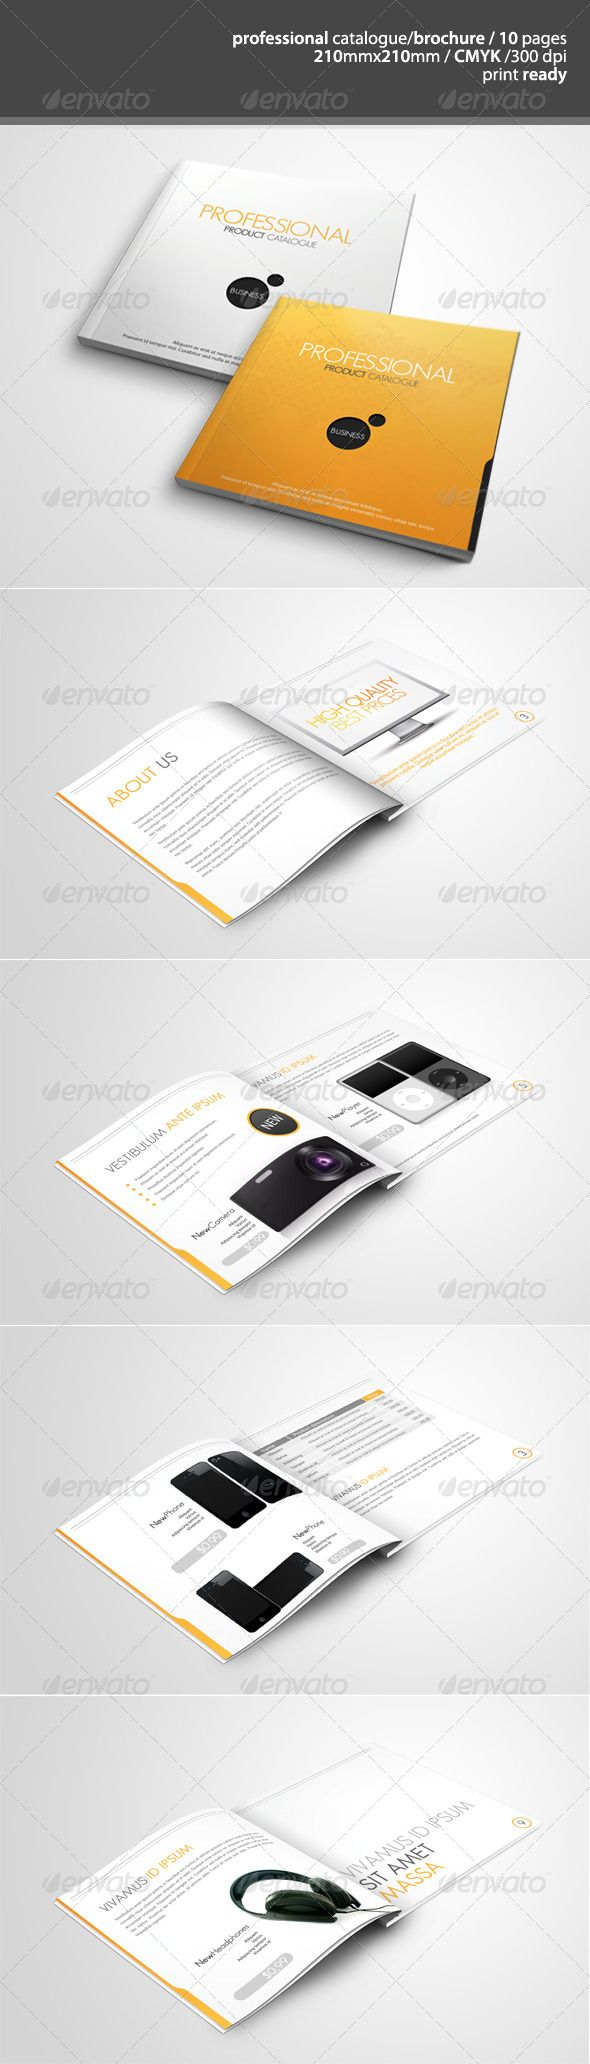 75 best images about product catalog template design on pinterest fonts texts and products for Catalog template indesign